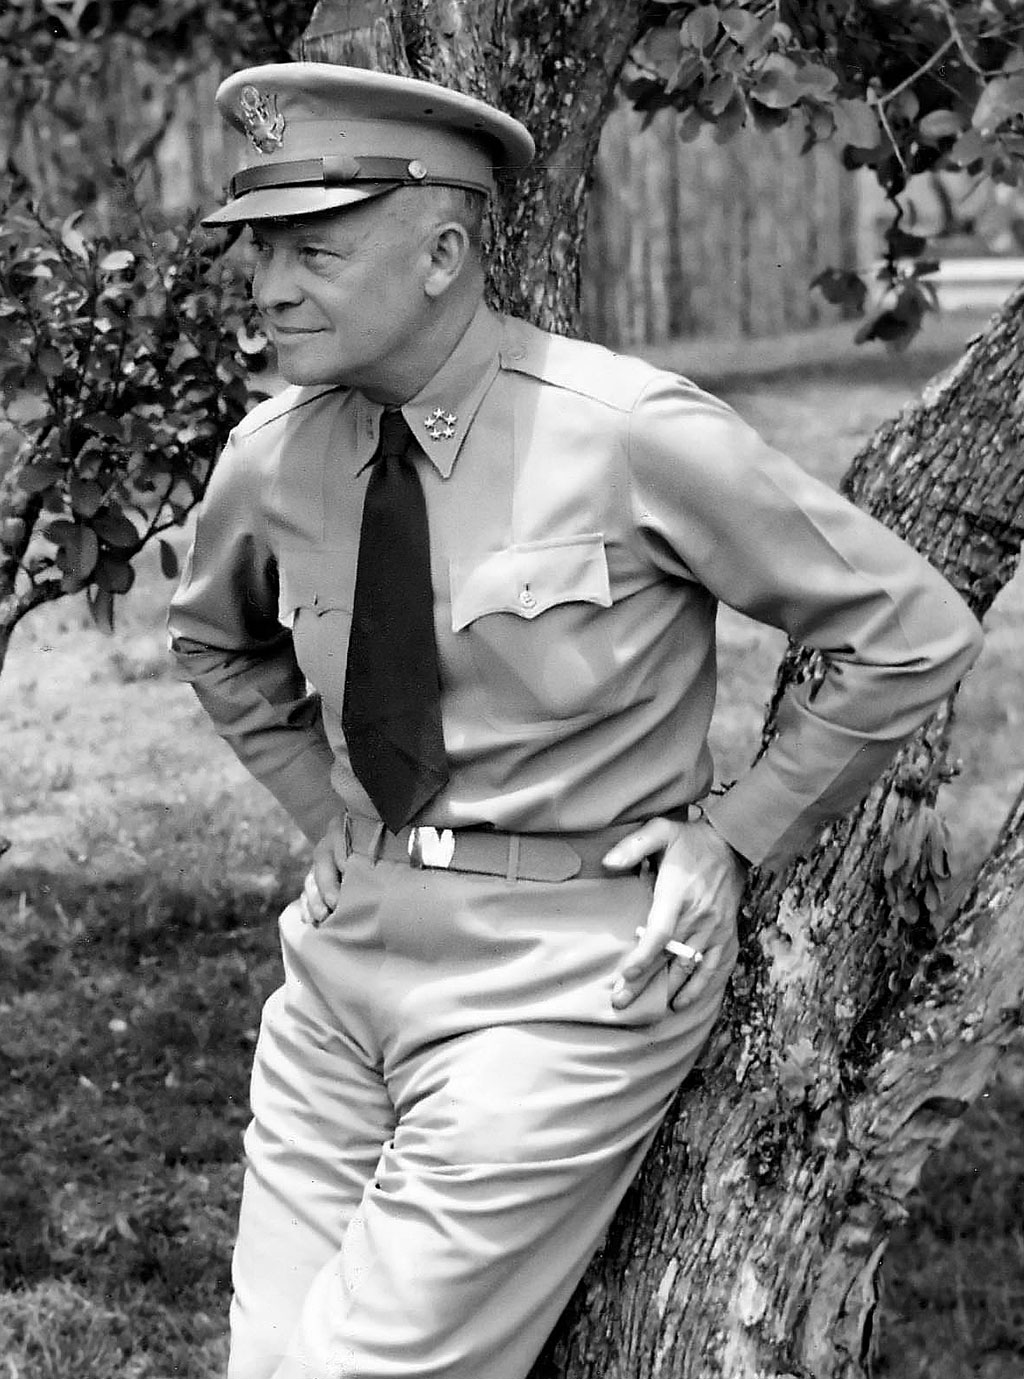 http://upload.wikimedia.org/wikipedia/commons/f/f8/Dwight_D._Eisenhower_as_General_of_the_Army_crop.jpg